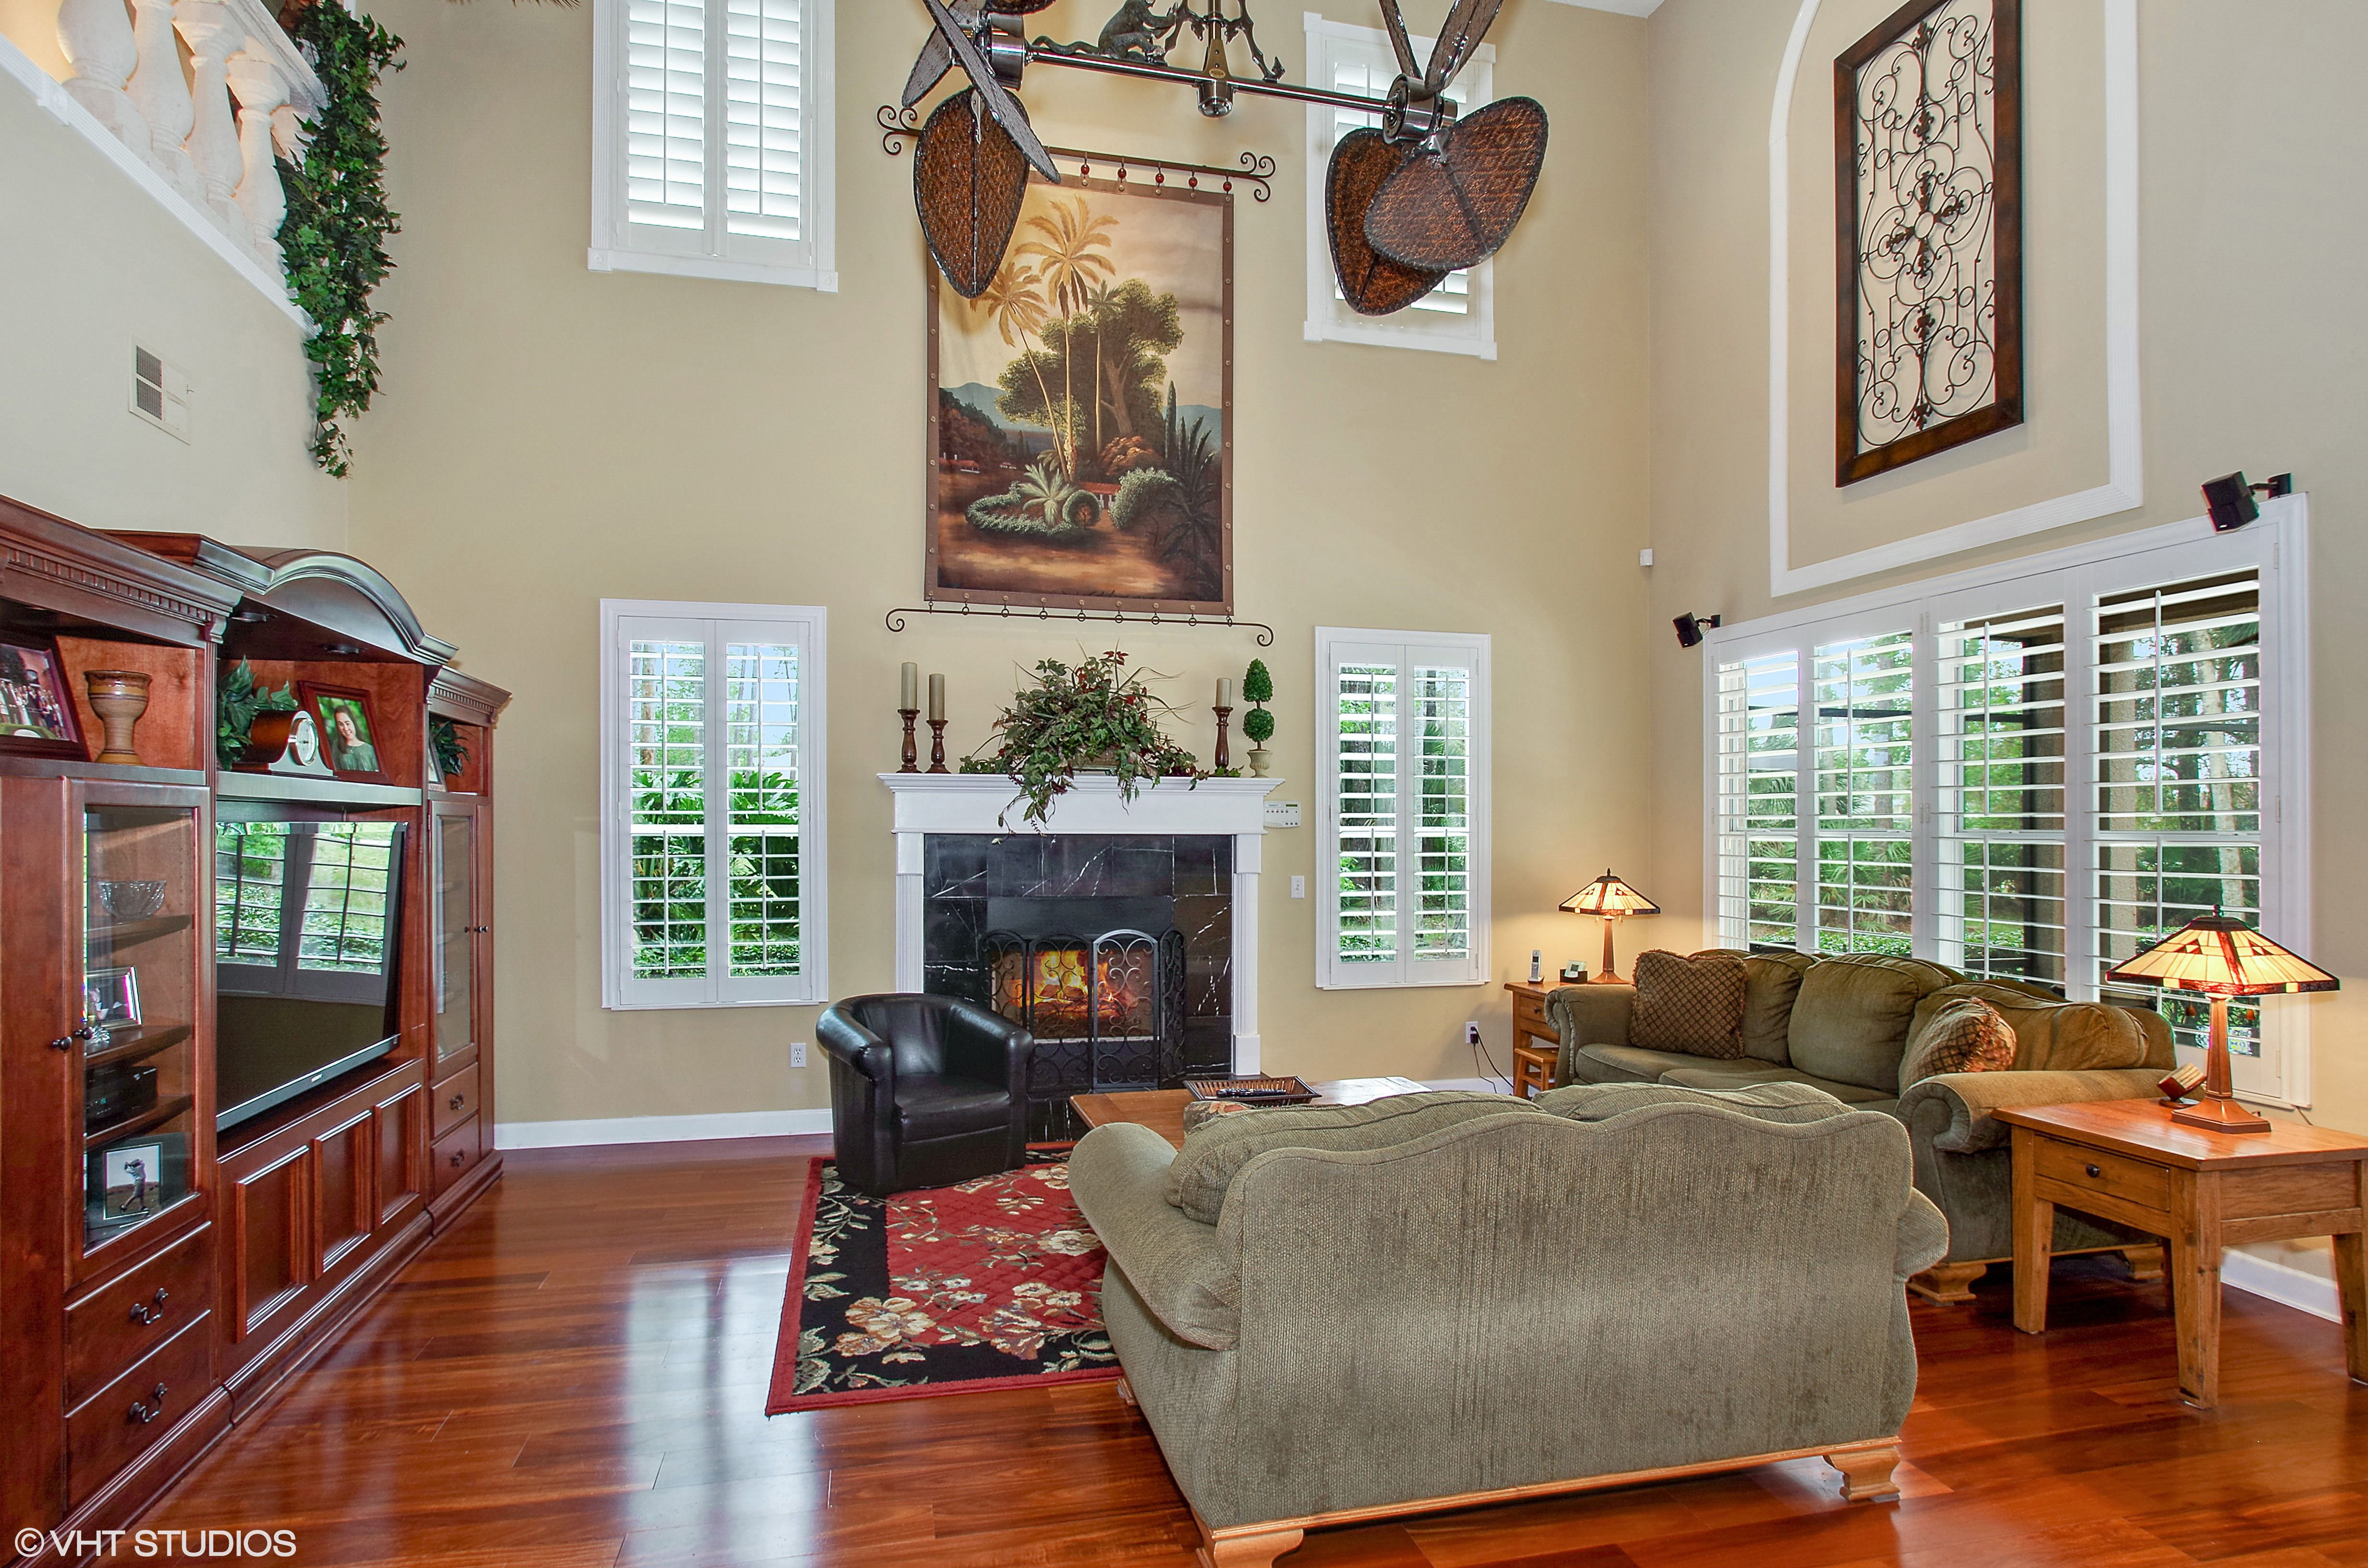 Pin by Margaret on 1625 Shadowmoss, Lake Mary, FL Home